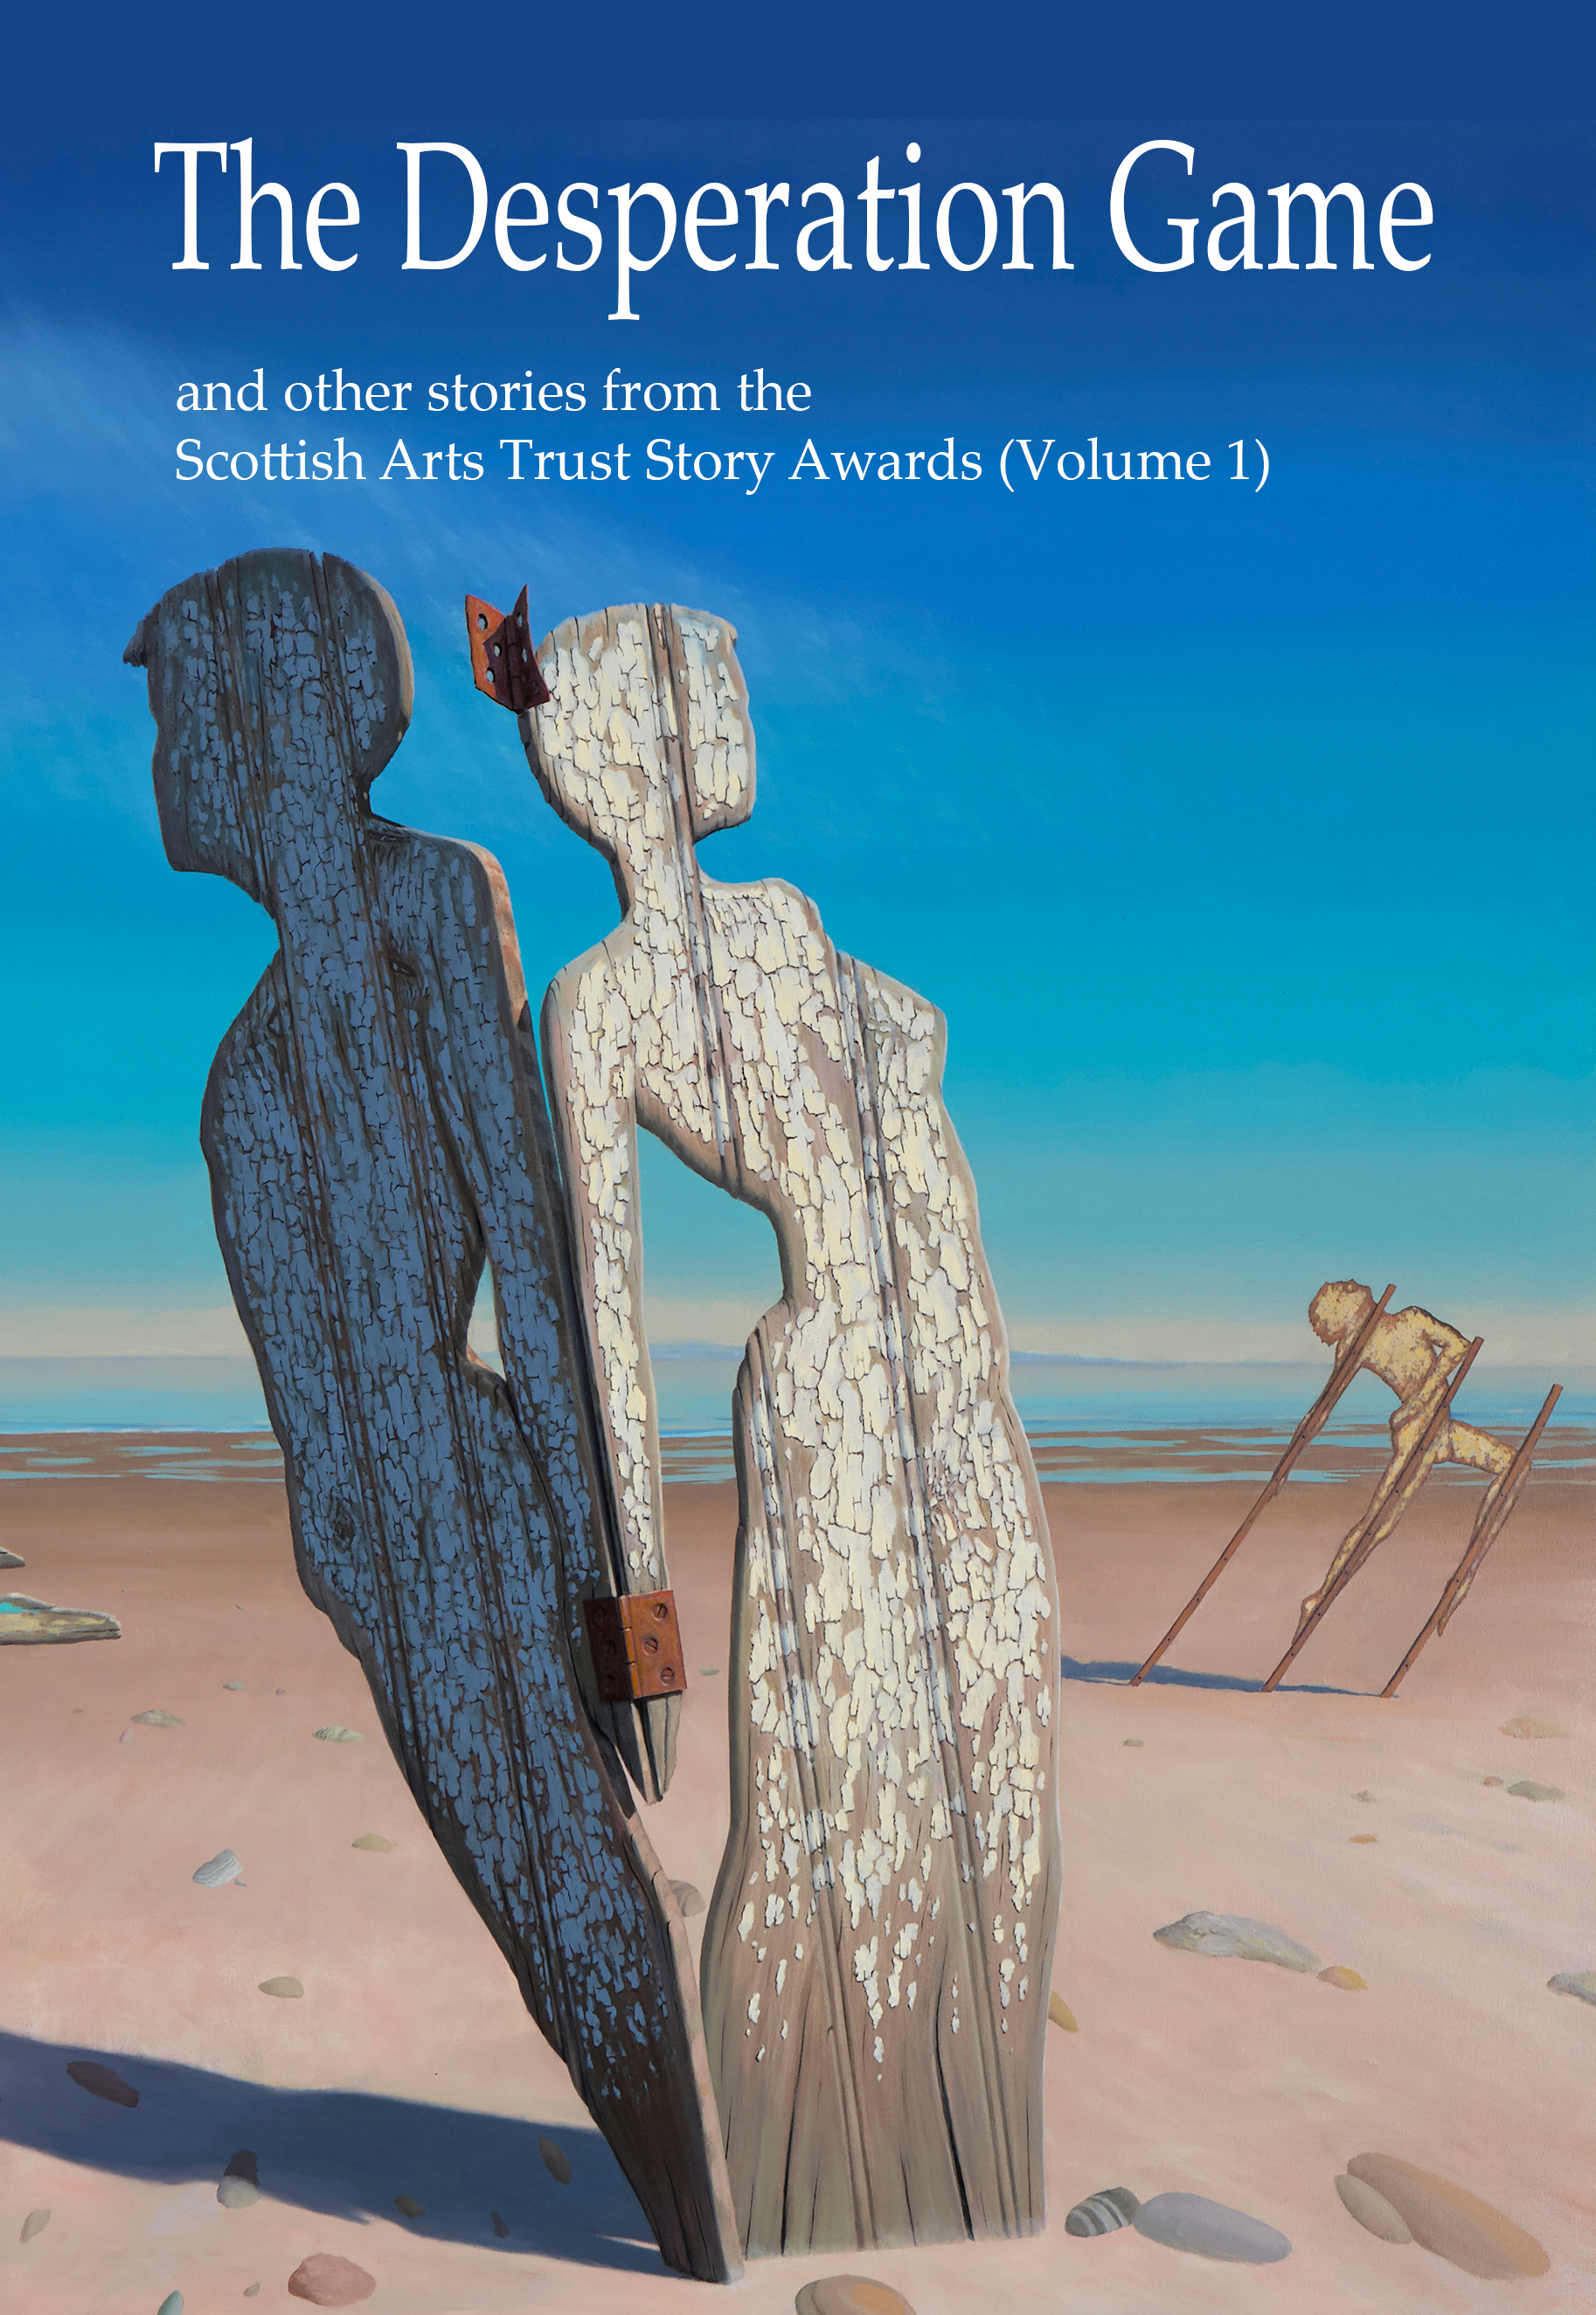 Featuring all the finalists from the first five years of the Scottish Arts Club Short Story Competition. Now available on Amazon for £8 paperback or £3 Kindle. -All proceeds used to support the arts in Scotland.